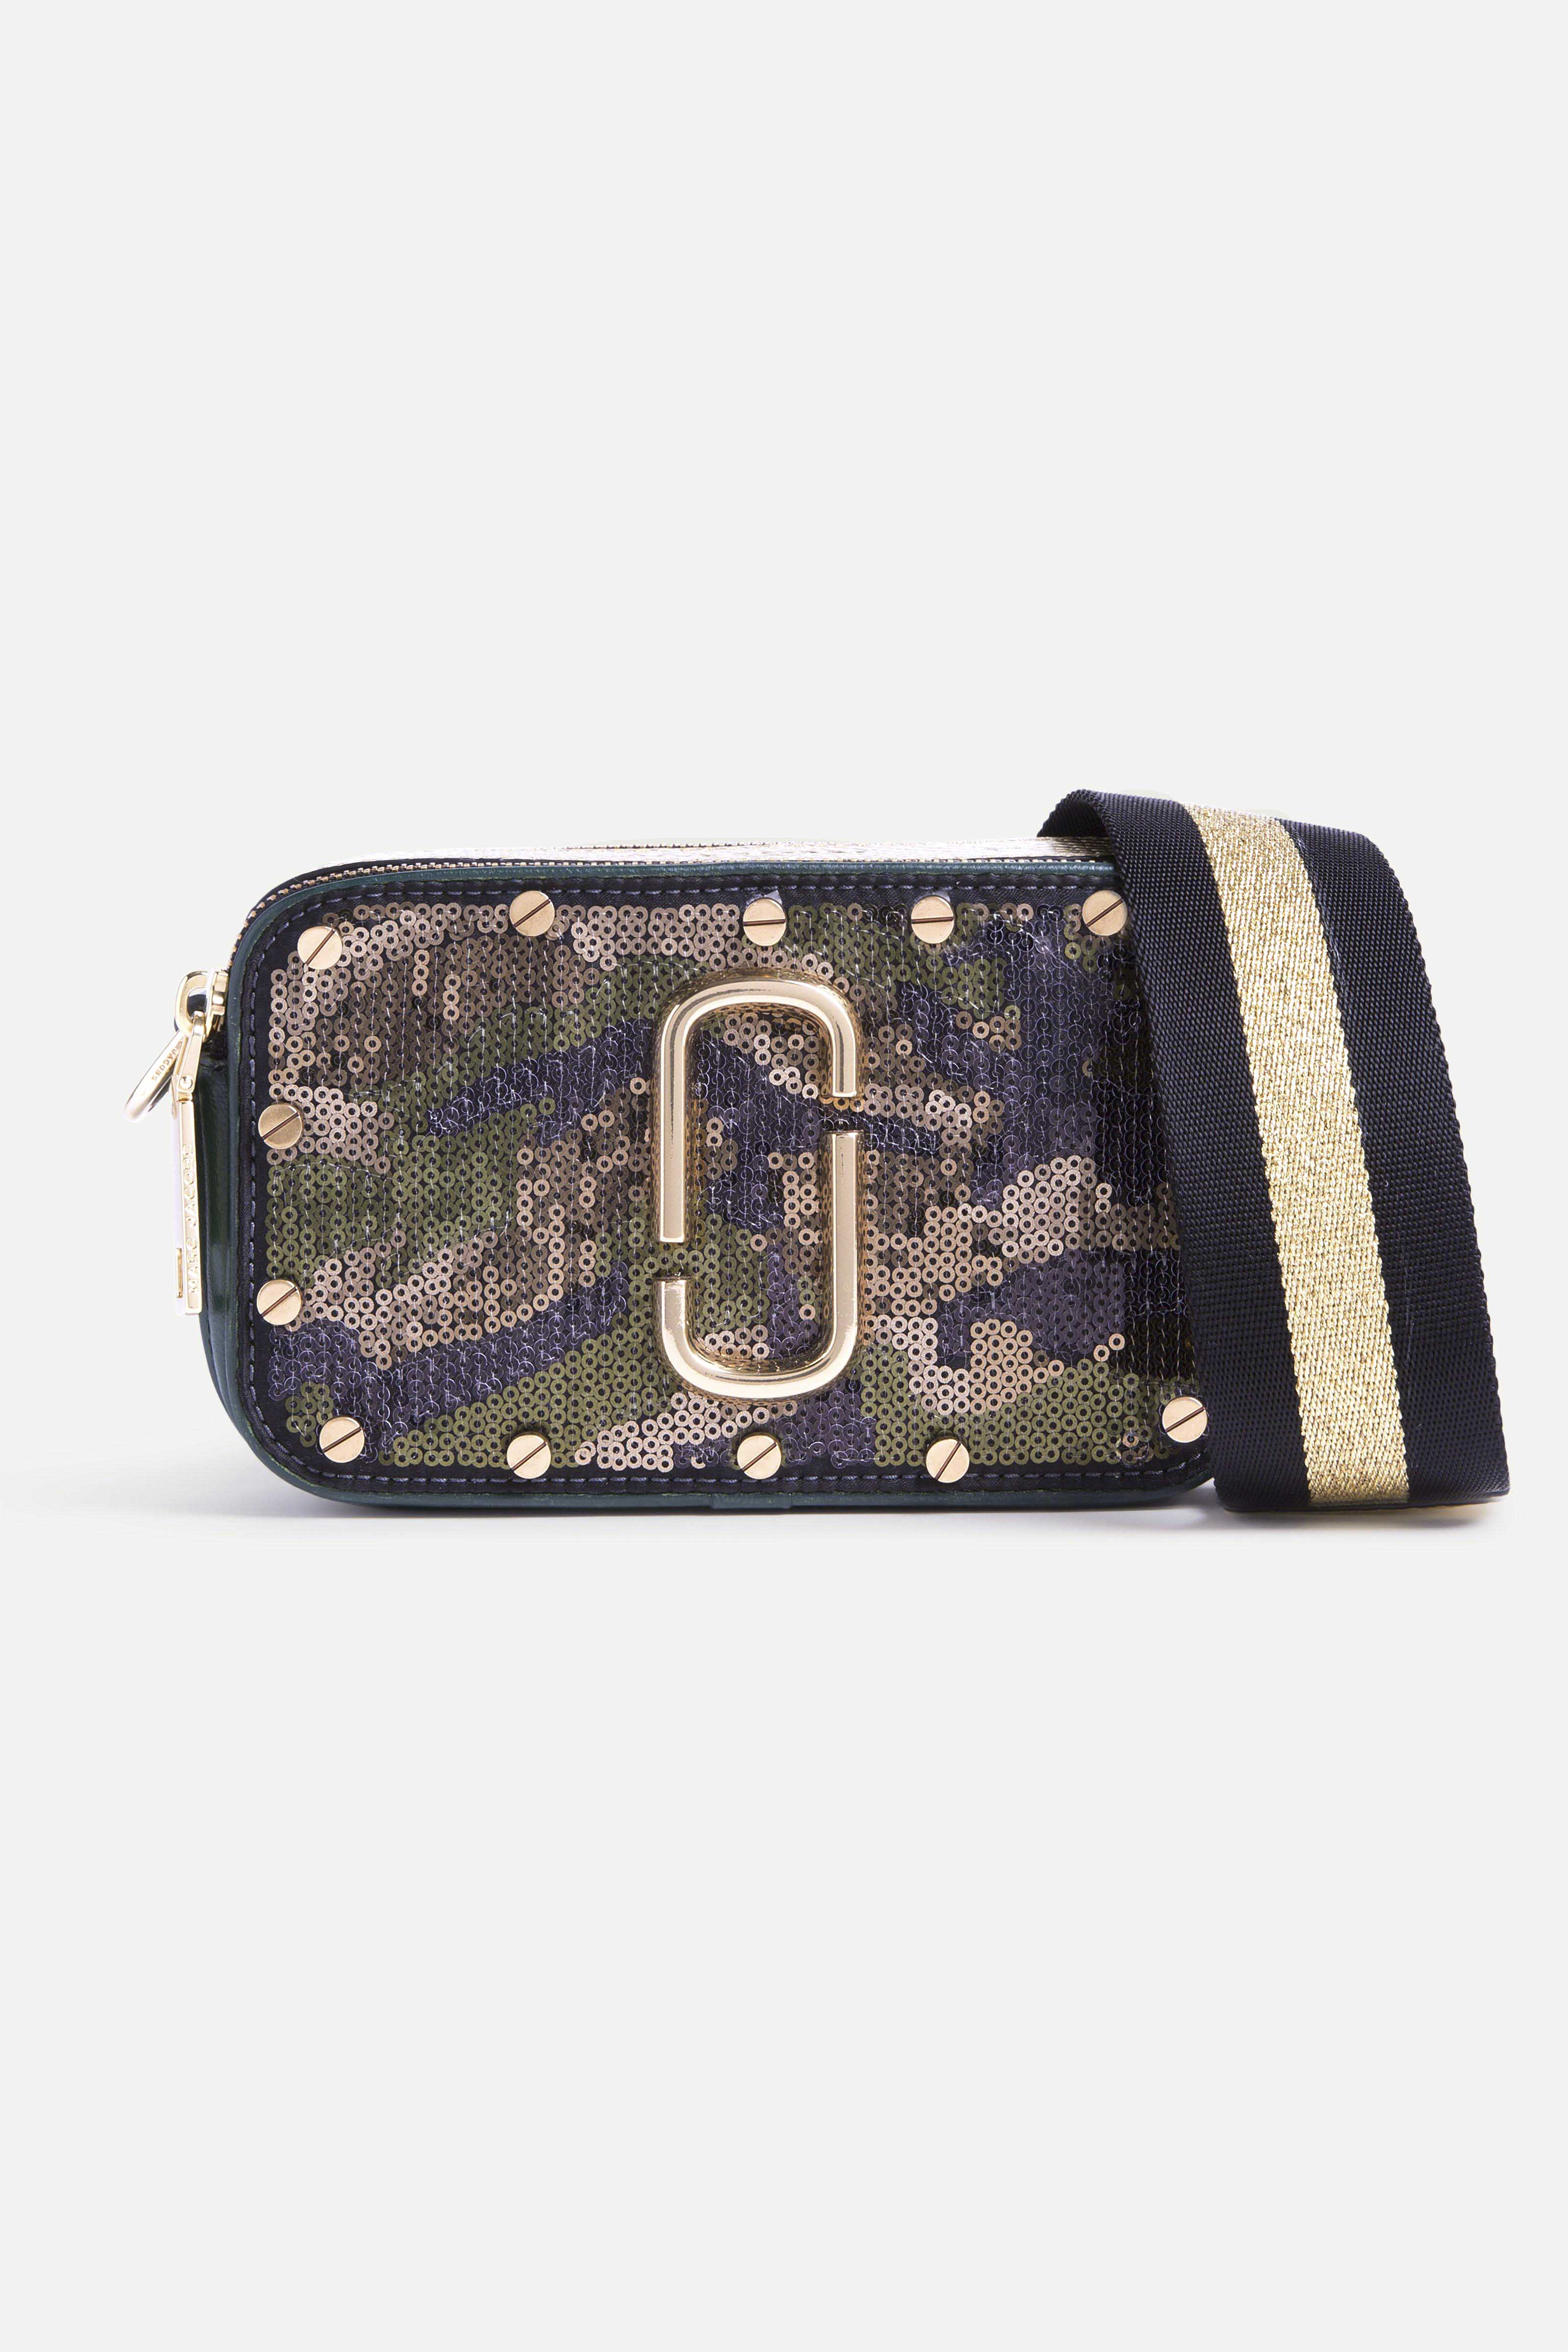 Marc Jacobs 1 - Sequins Camo Snapshot - Army Multi